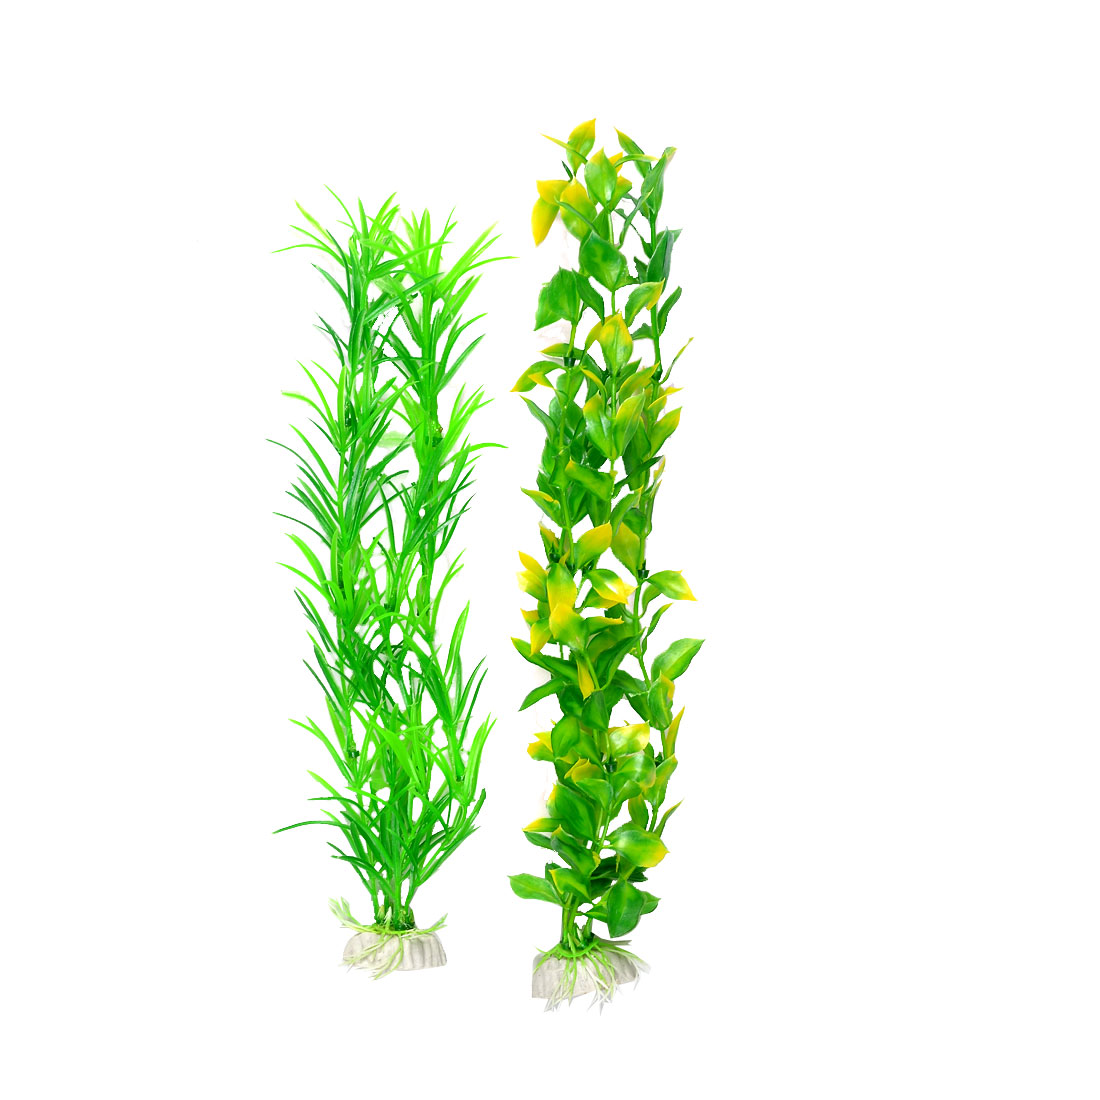 2 Pcs Green Yellow Ovate Leaves Fish Tank Decorative Plastic Water Plant